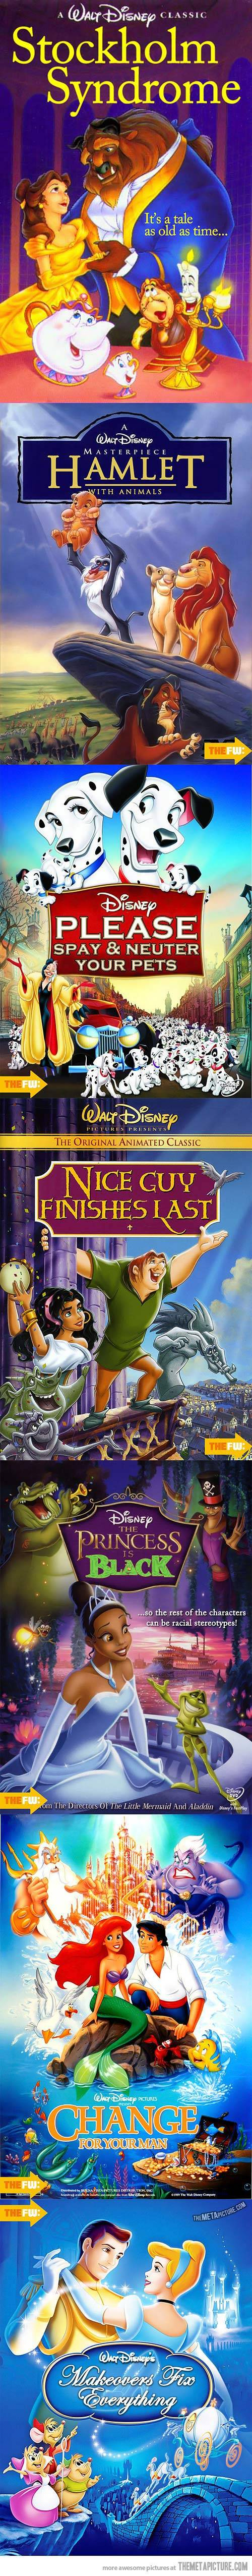 Disney Movies with Accurate Titles